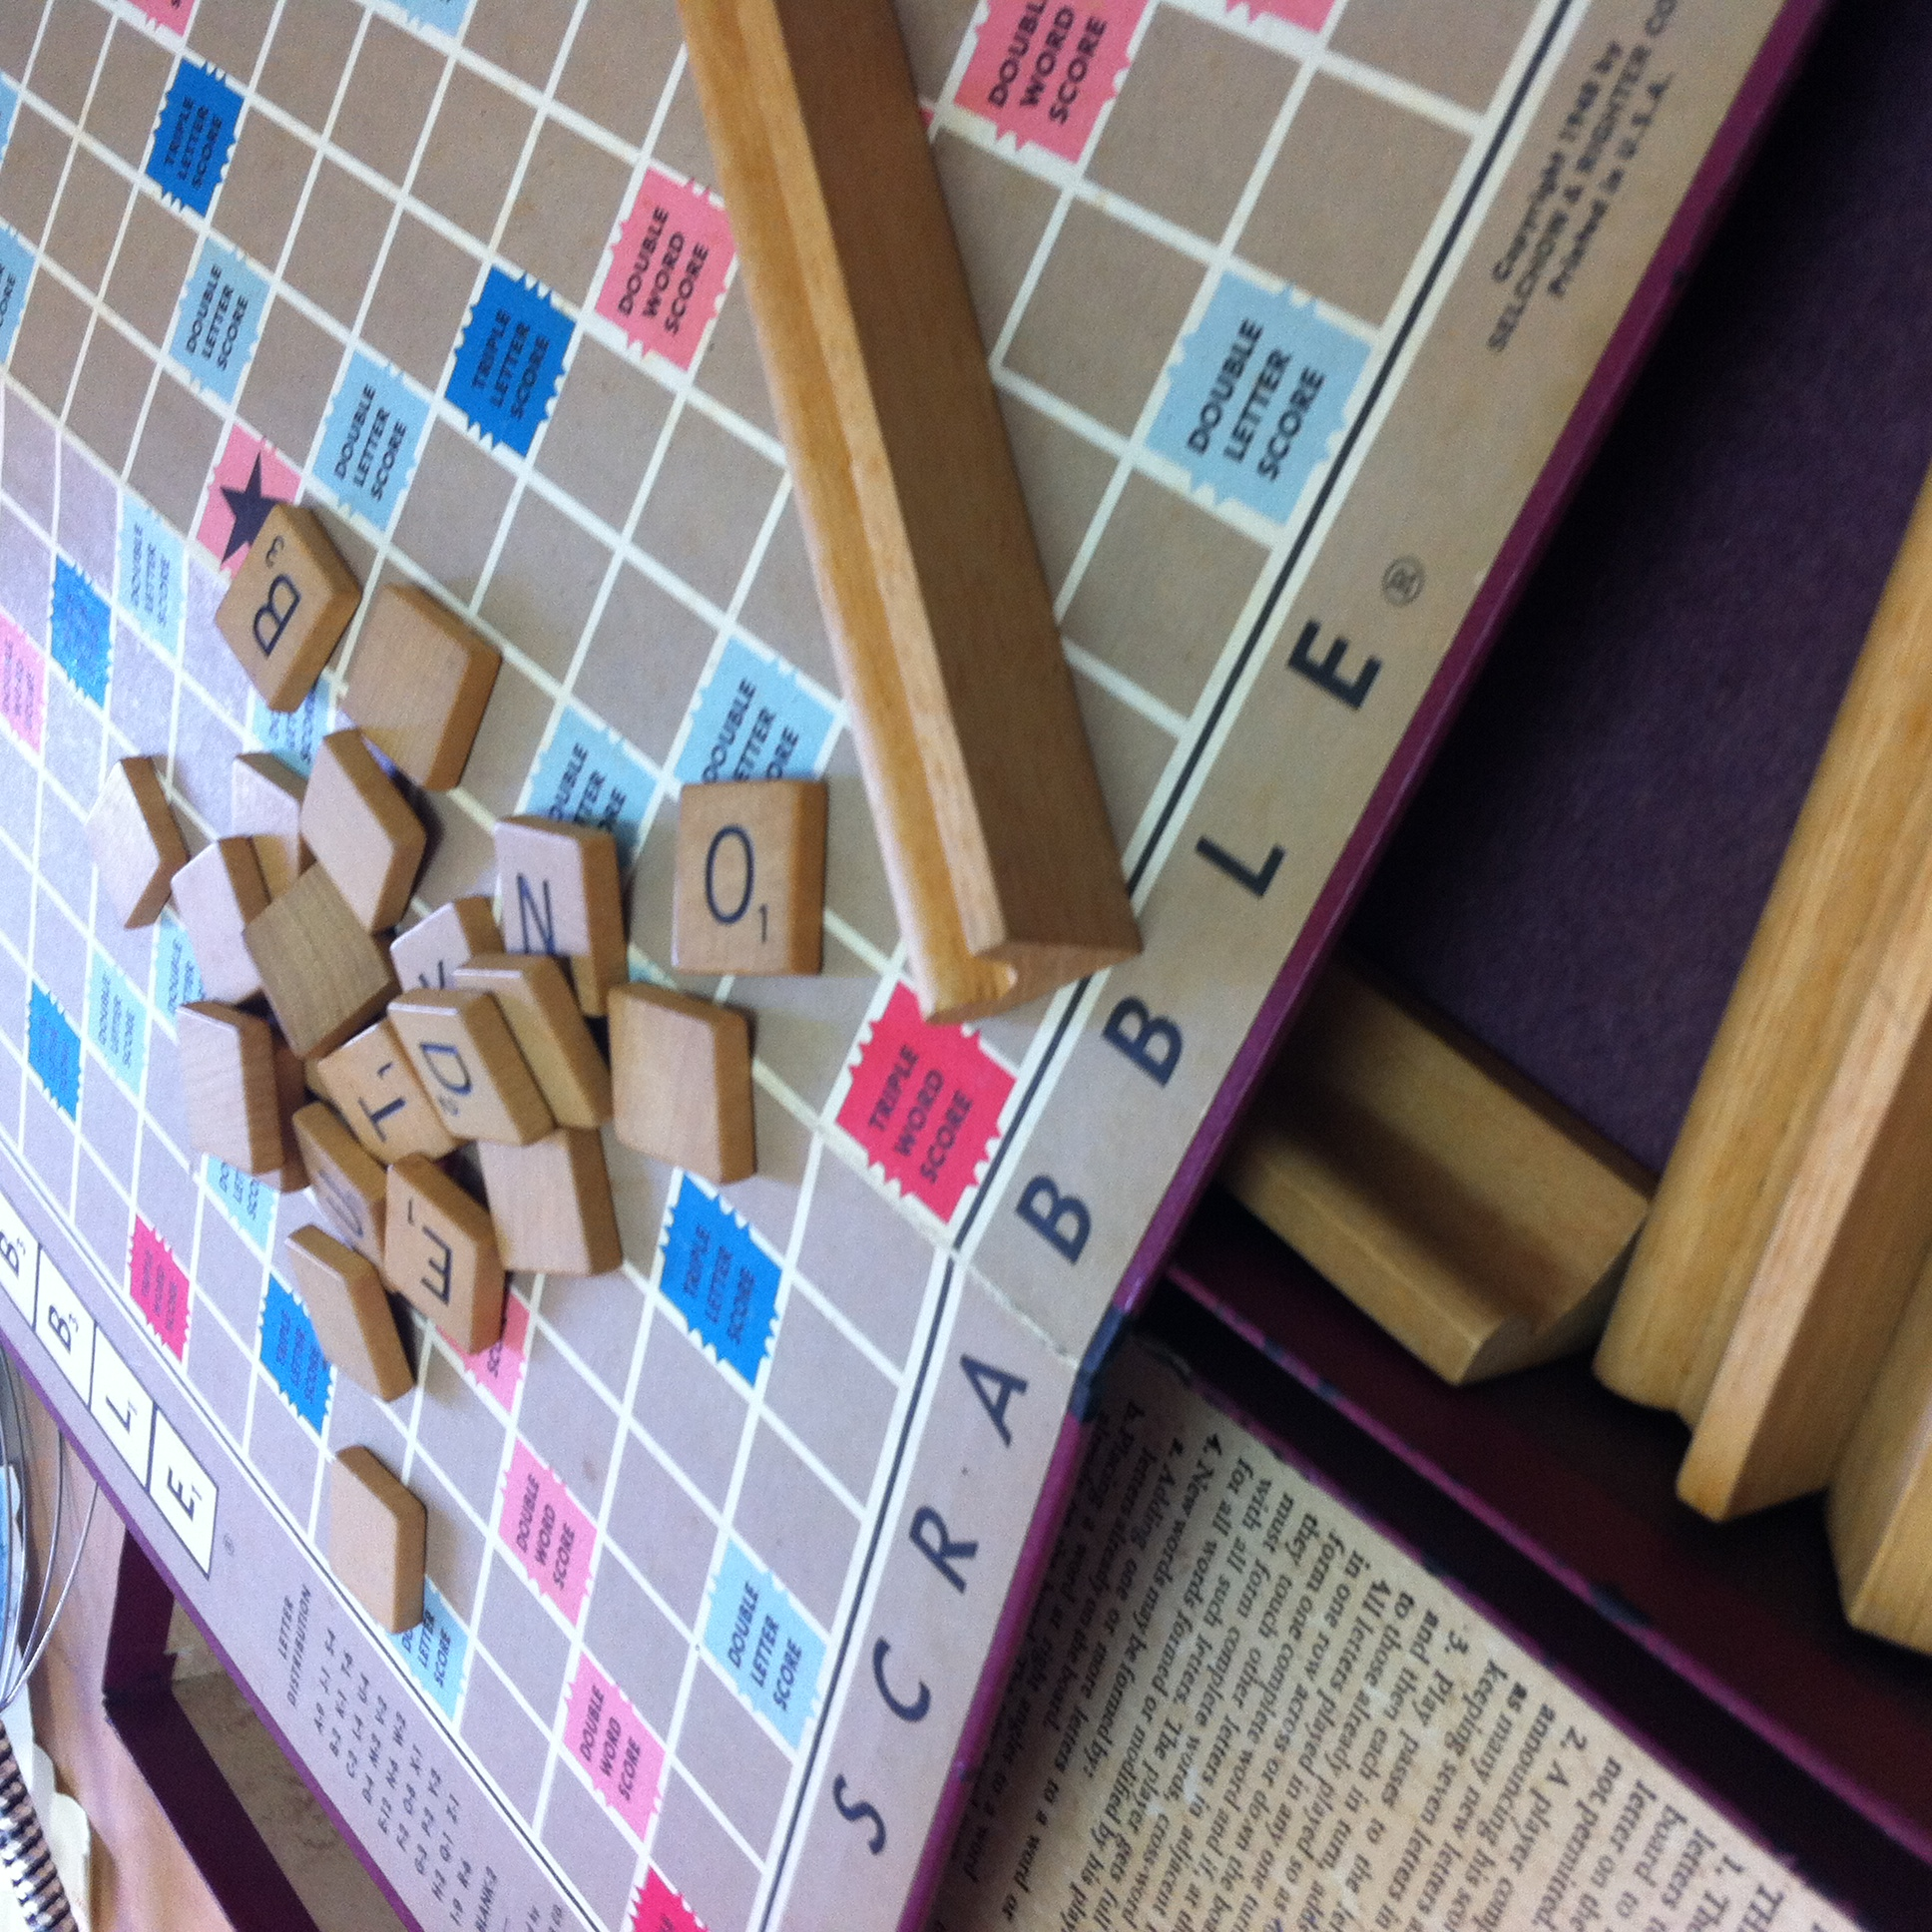 The original Scrabble game I used to play with my Mom and Dad